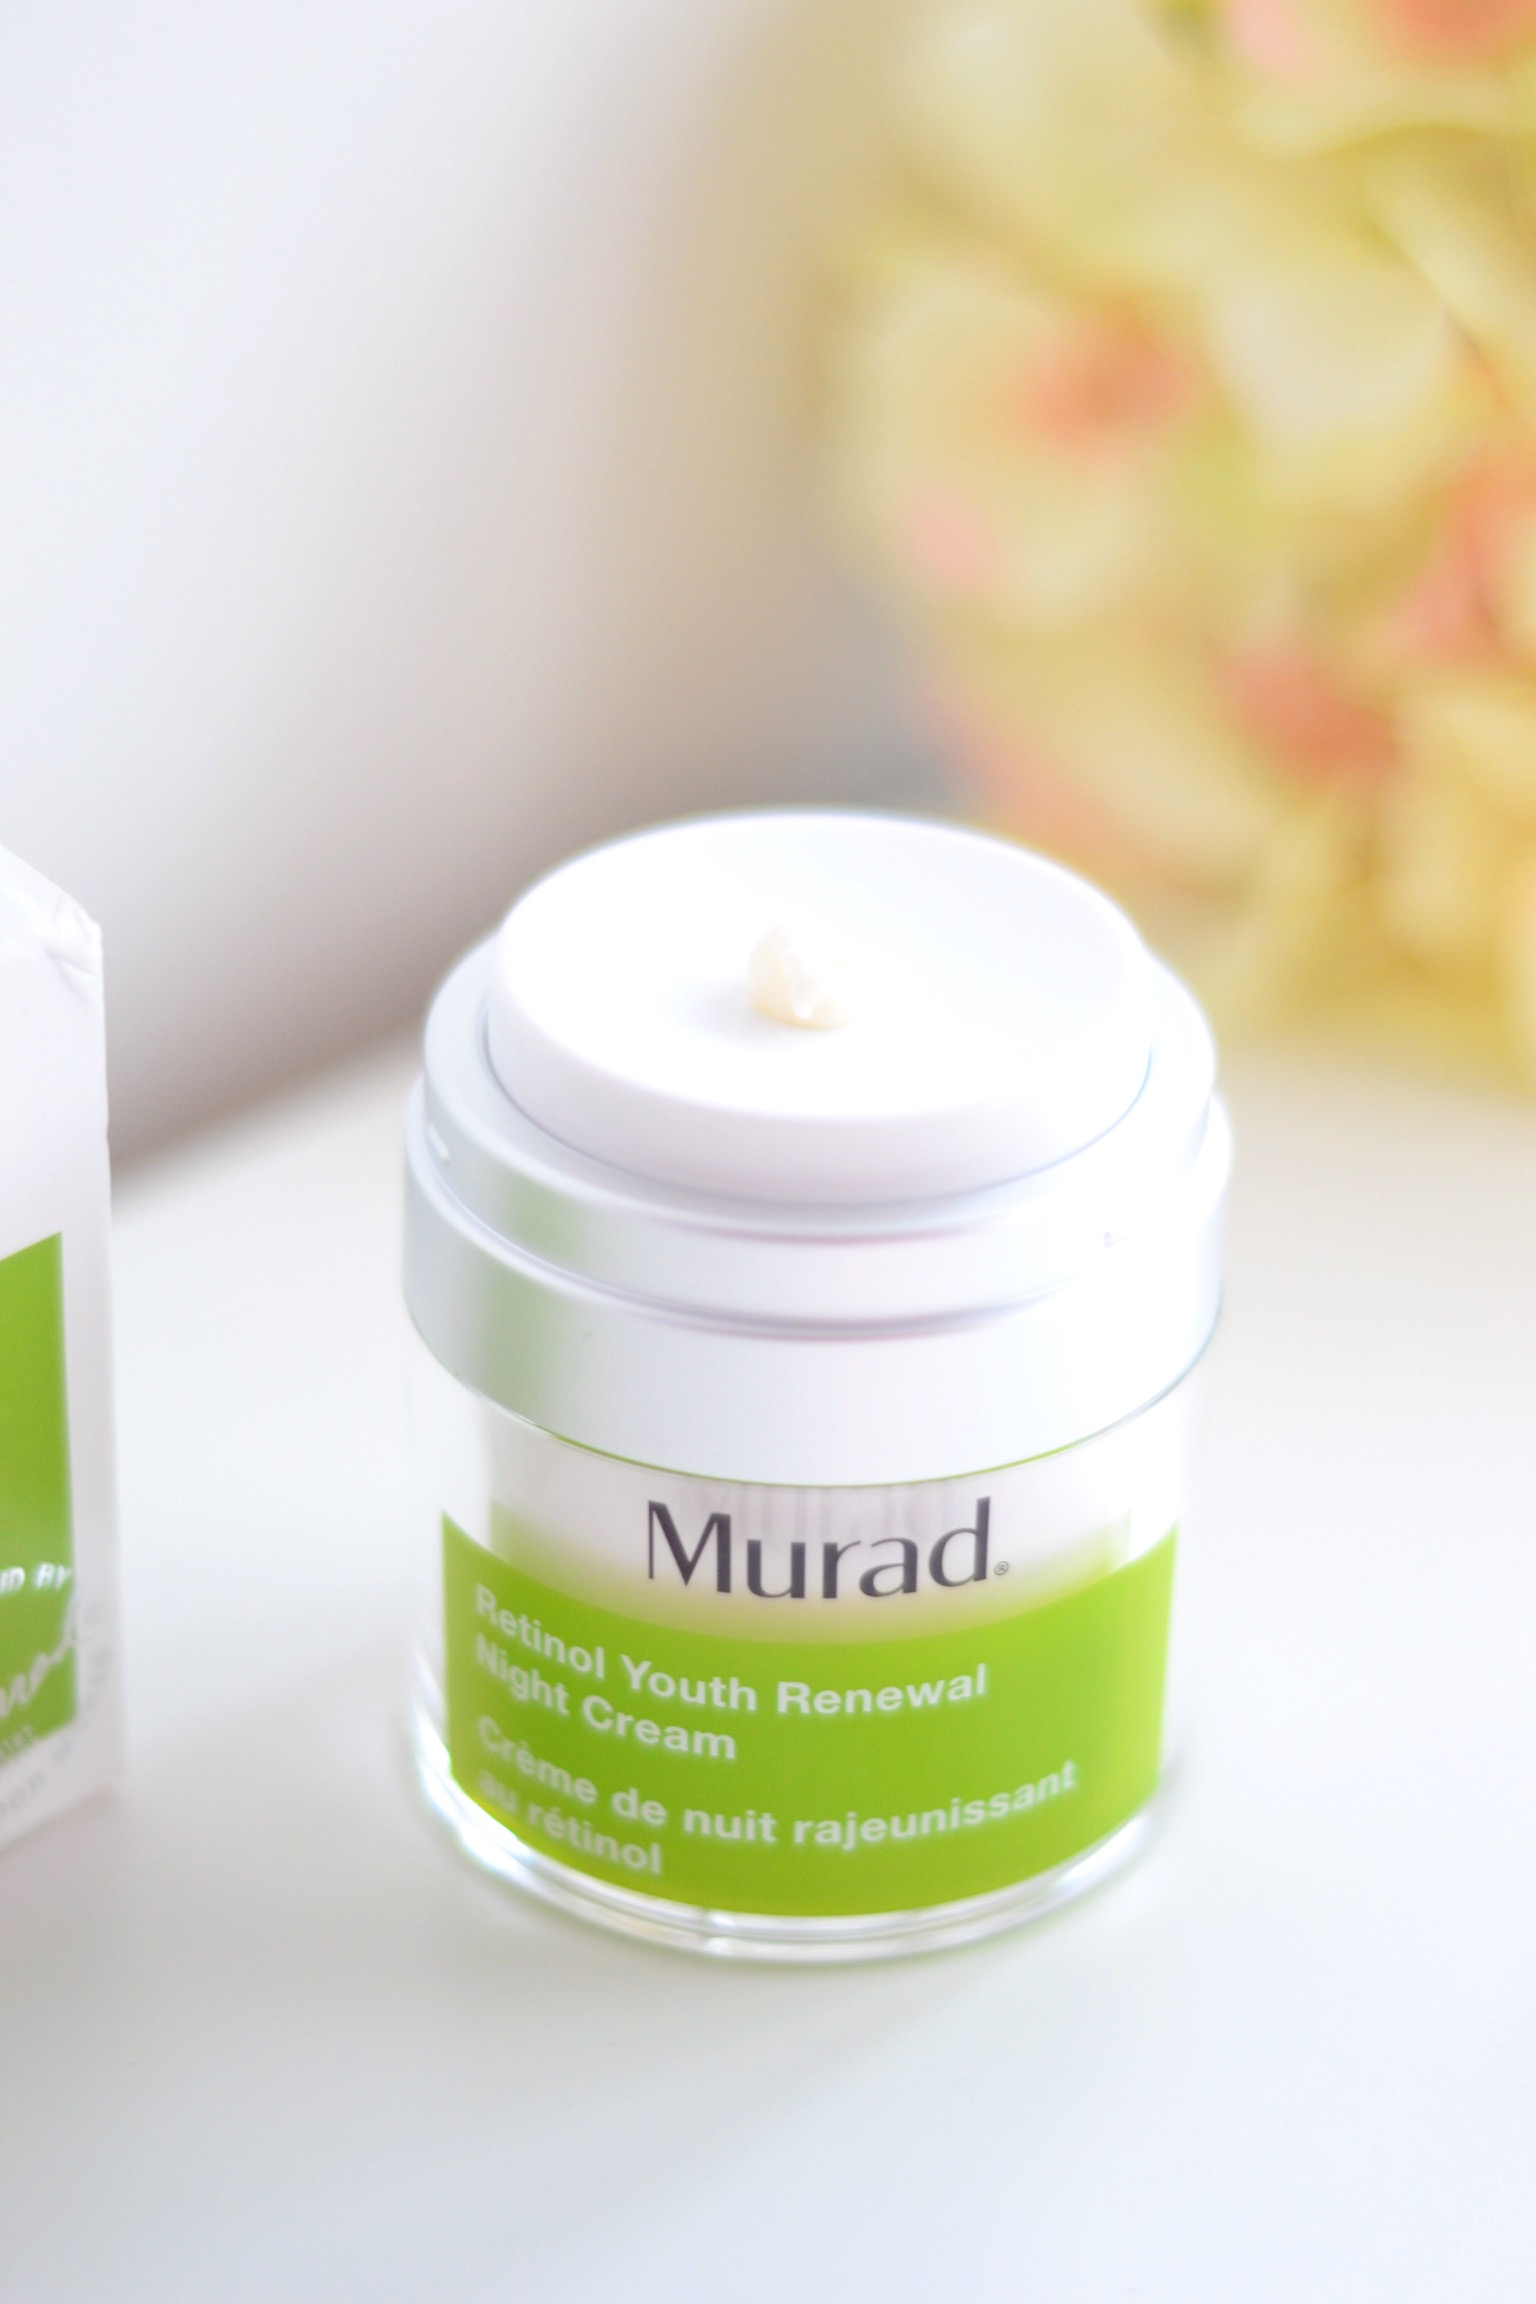 Beauty: Murad Retinol Youth Renewal Range (Everything You